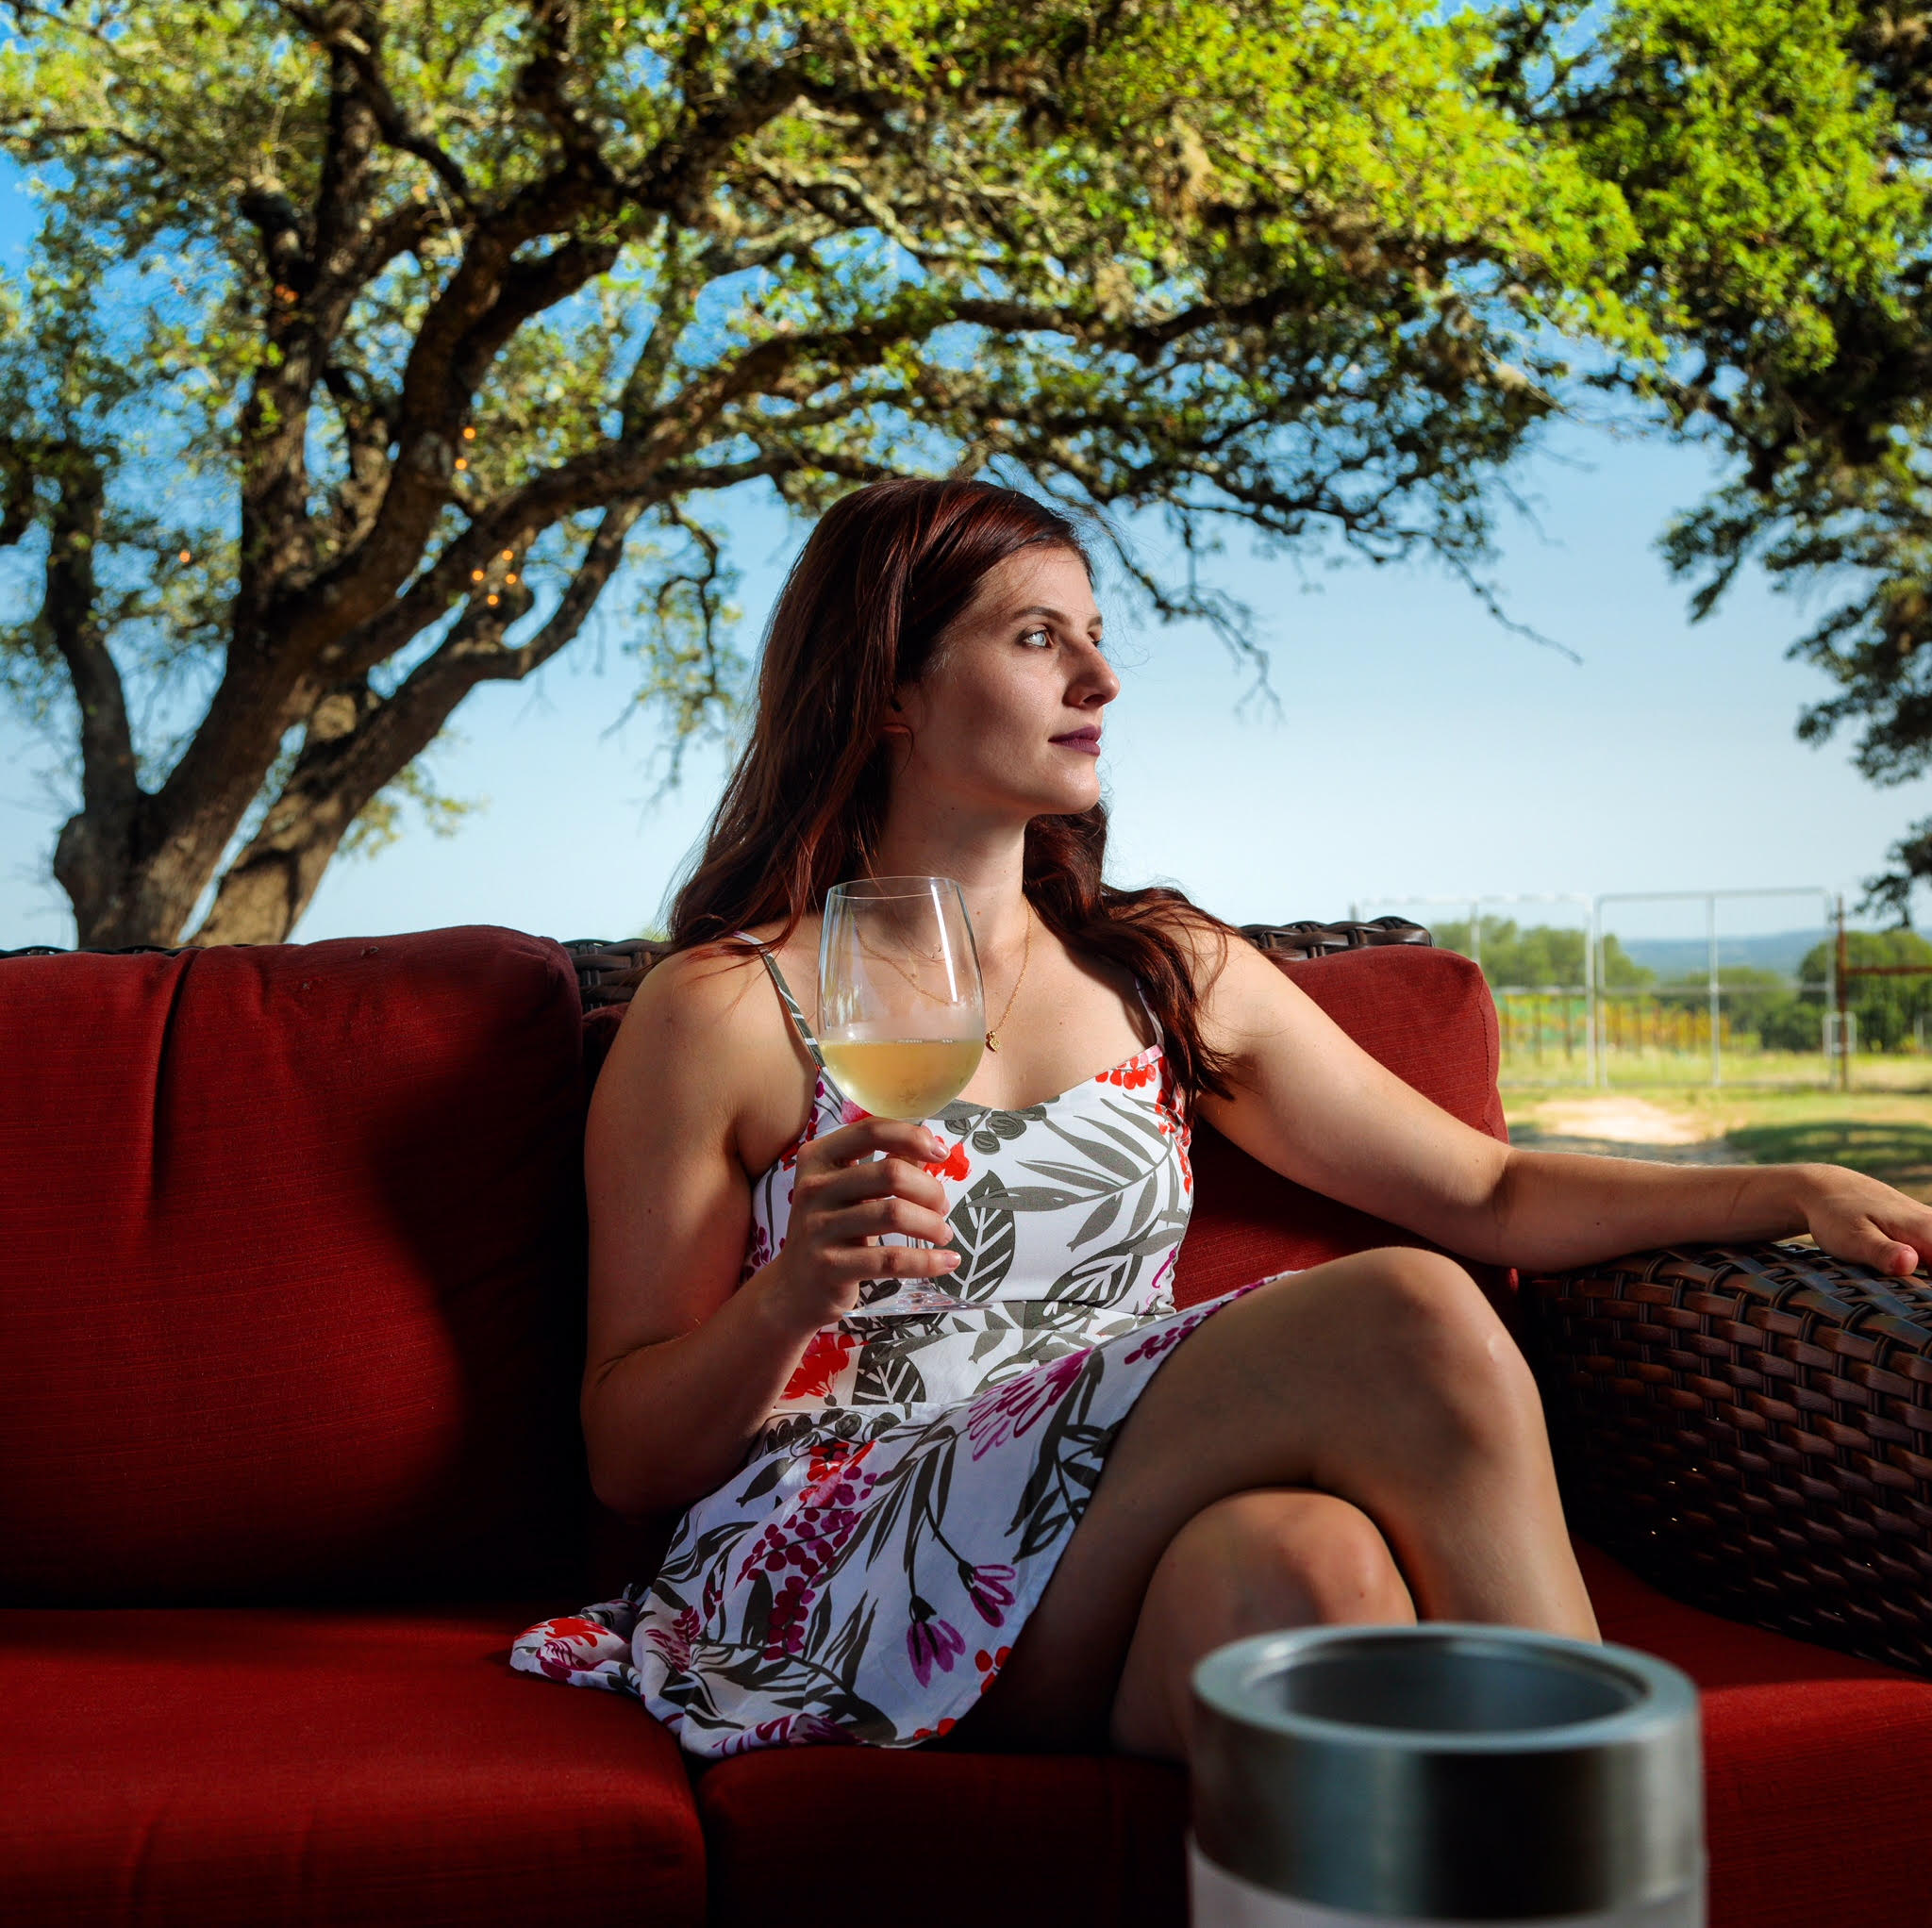 DANIELA DASUTA, 09.14.18 - Daniela is owner of Sekt Wine Consulting in Austin, TX. She is a wine educator and has recently taken a role as the Wine Studies instructor with the Culinary Institute of America. She is finishing up her WSET Diploma and will soon be preparing for the rigorous MW Certification!